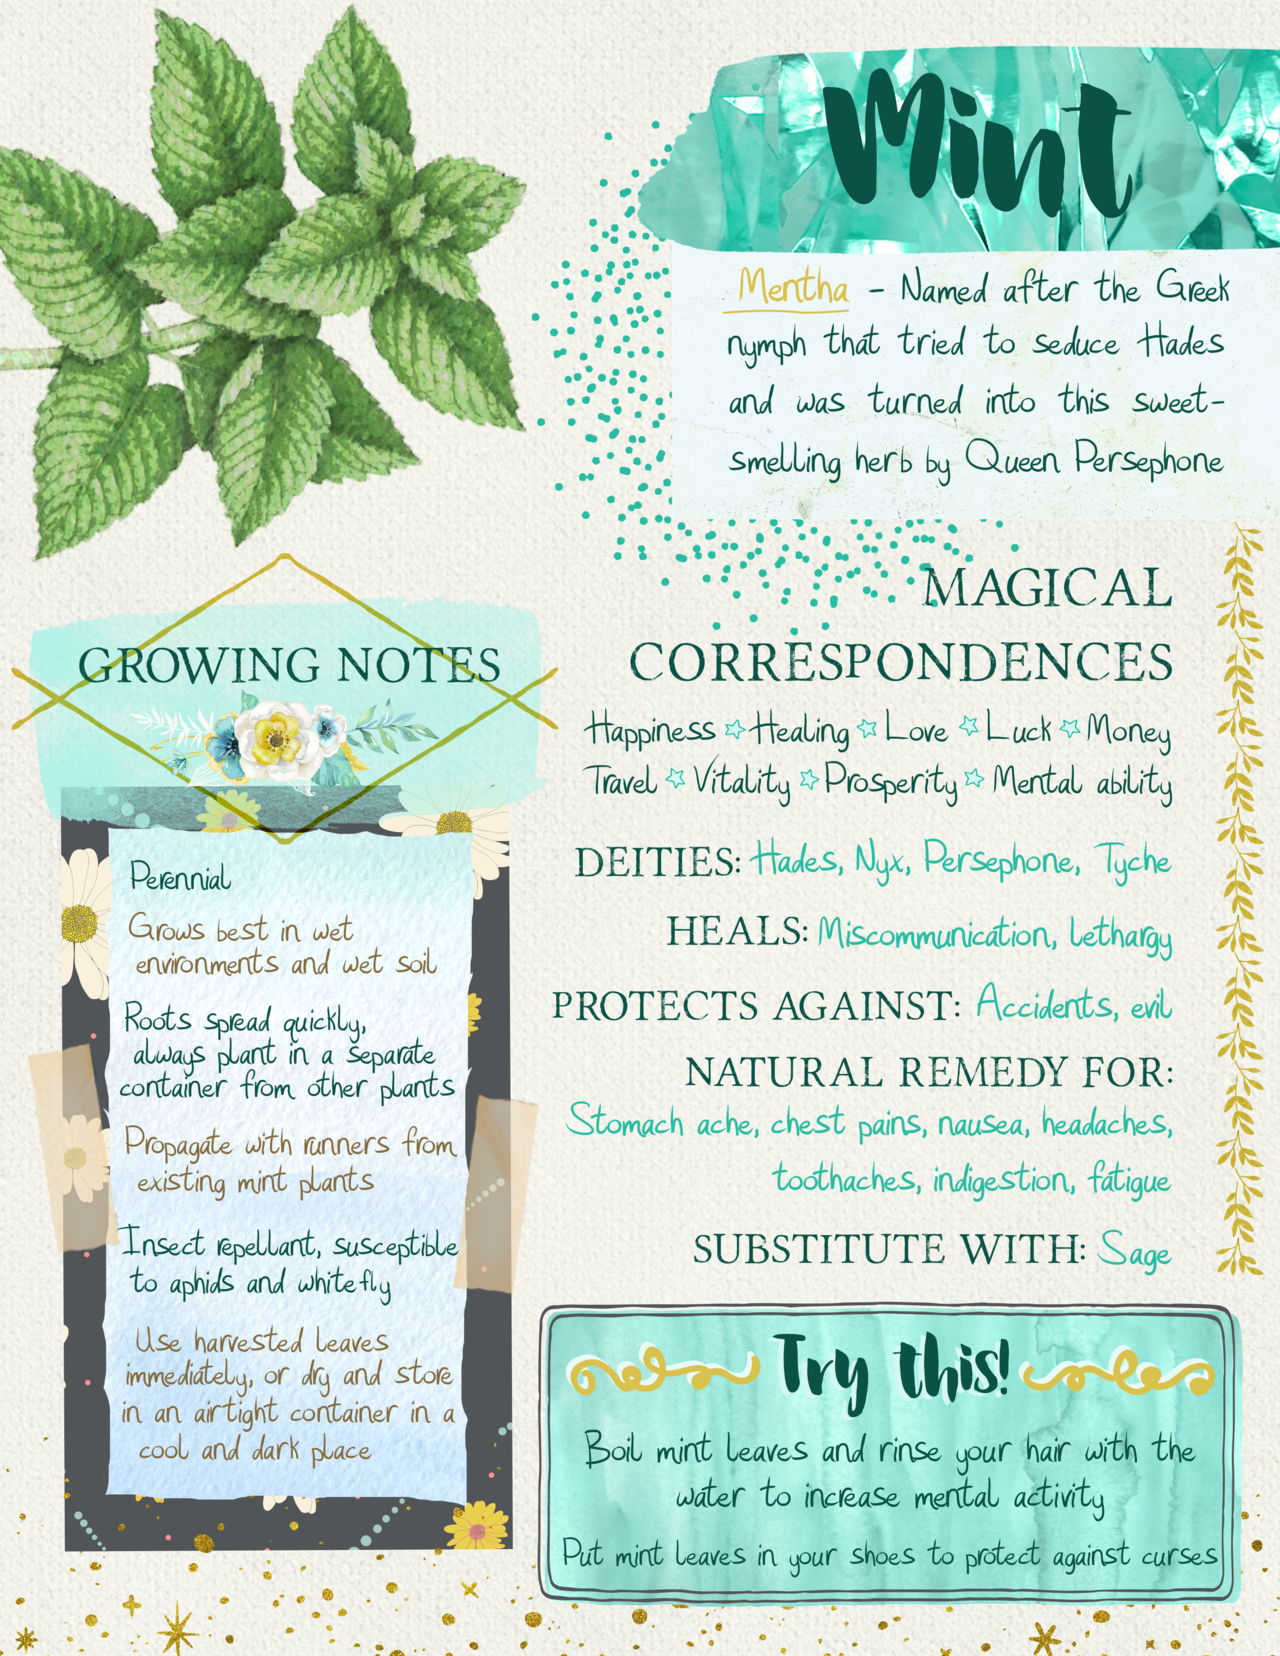 Magical Correspondences Of - Mint | Magical Properties Of